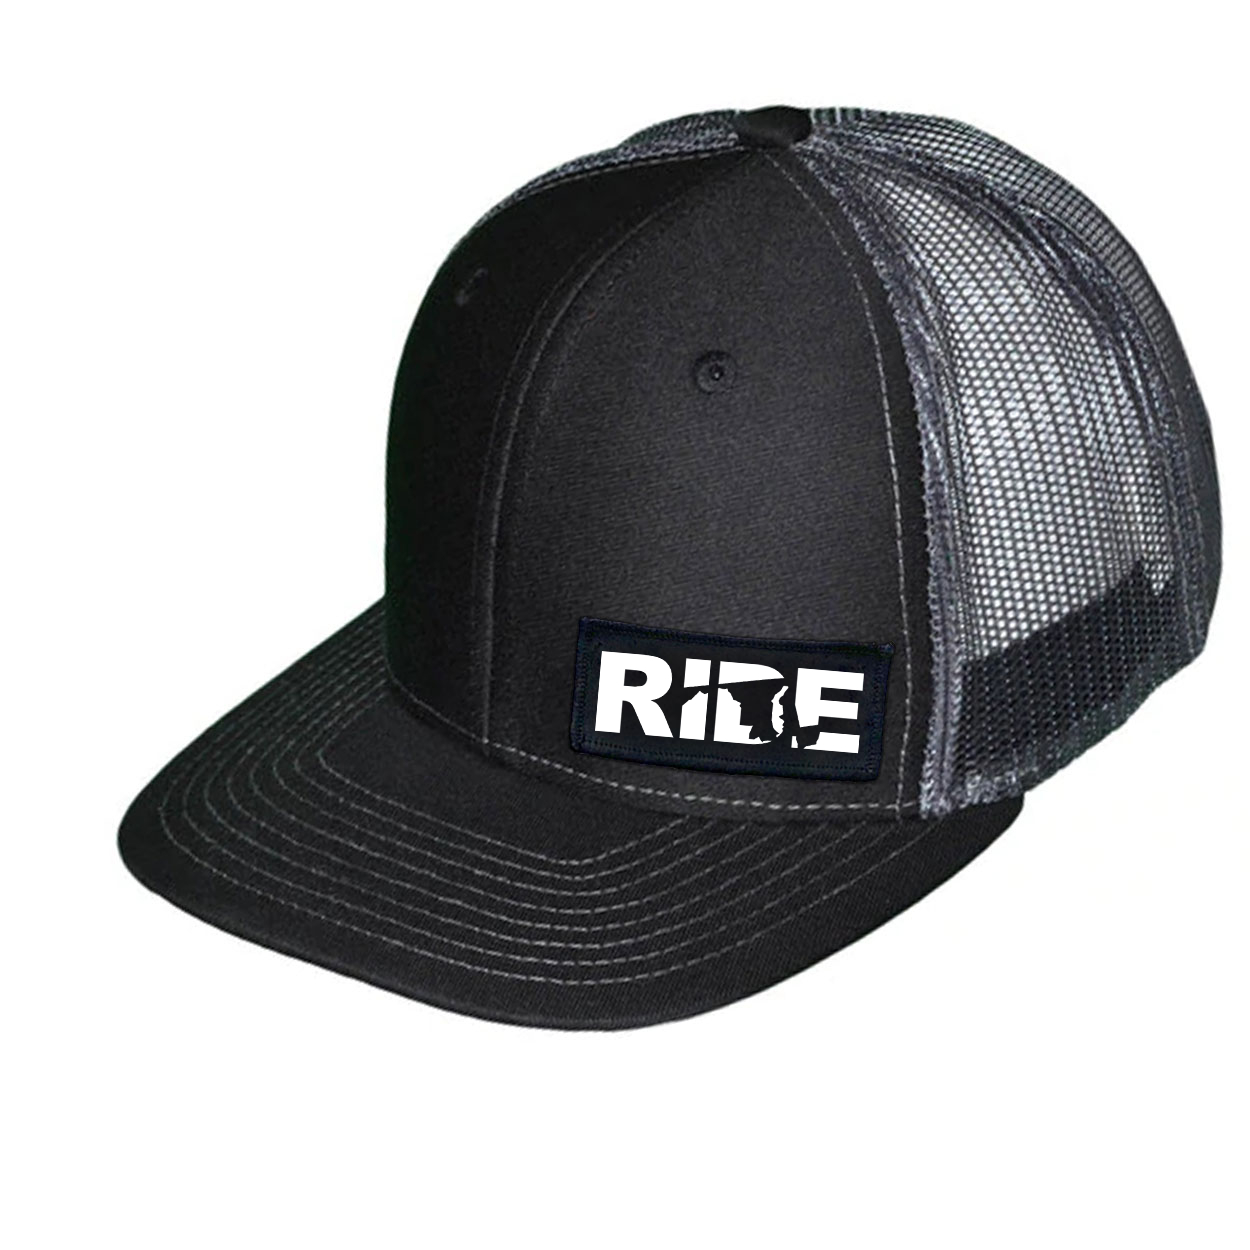 Ride Maryland Night Out Woven Patch Snapback Trucker Hat Black/Dark Gray (White Logo)